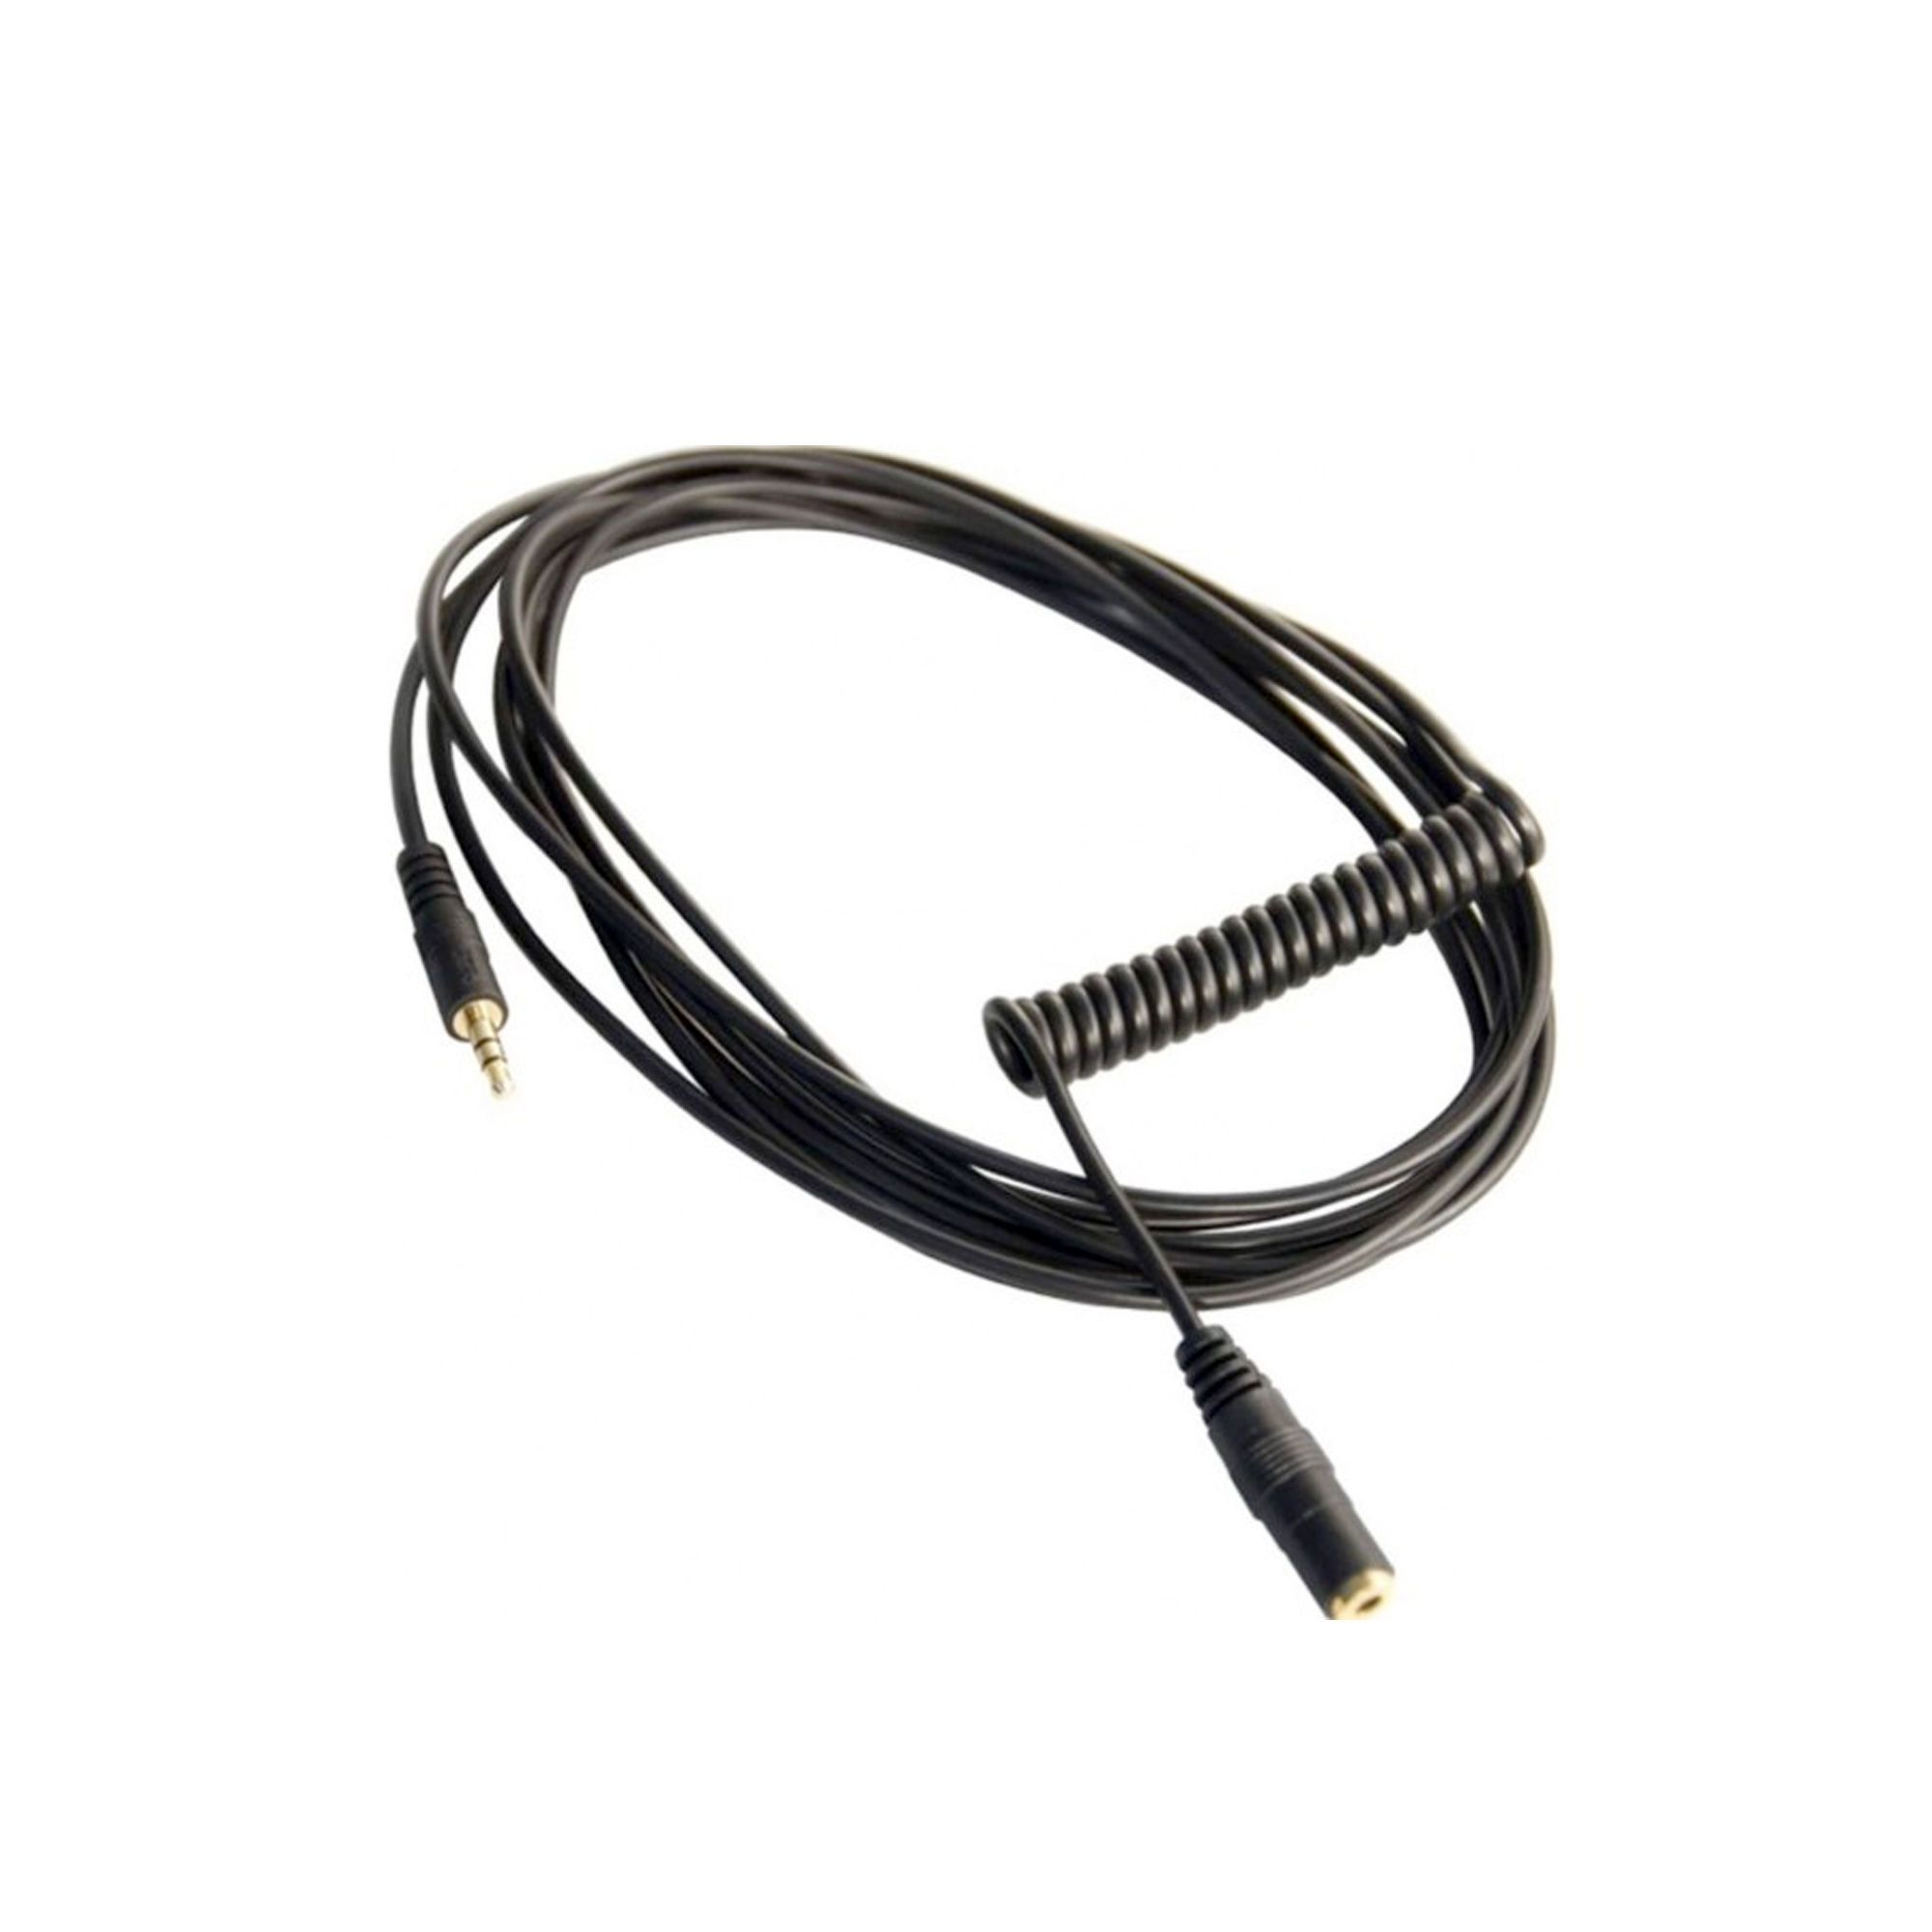 Rode Vc1 Audio Extension Cable 3m 10 Stereo Mini Jack